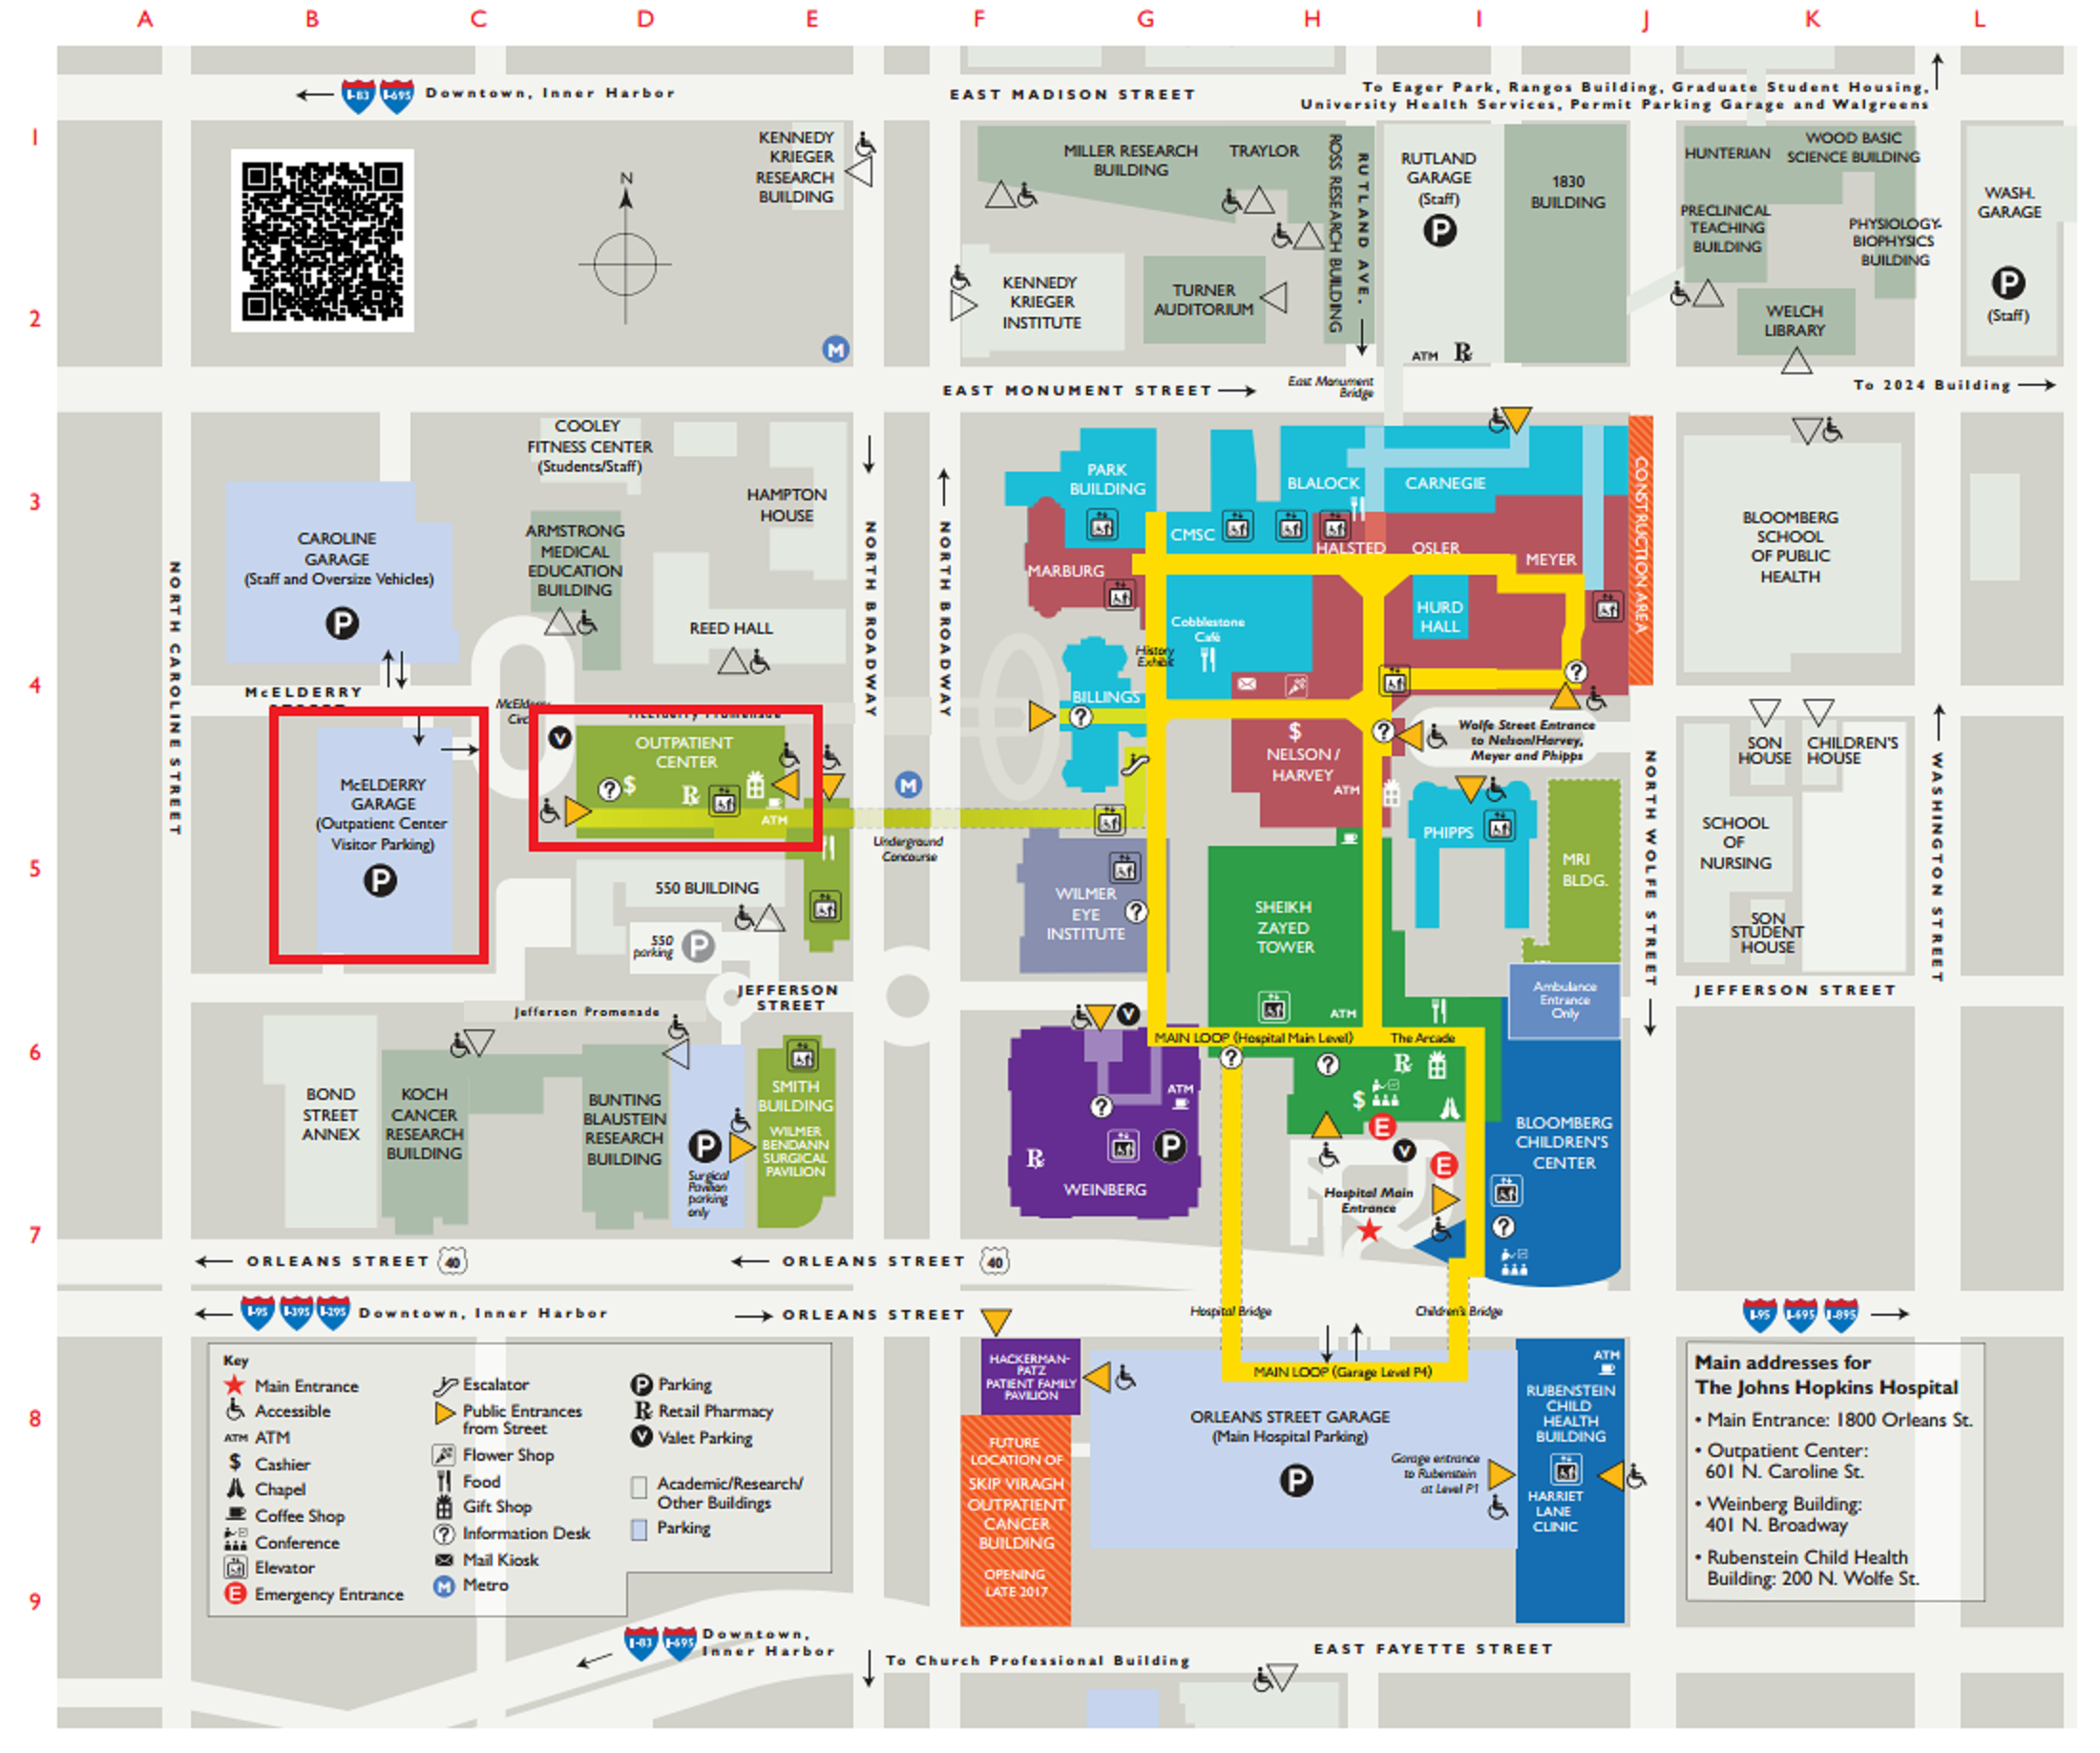 Johns Hopkins Hospital Map Johns Hopkins Hospital Campus Map | World Map Interactive